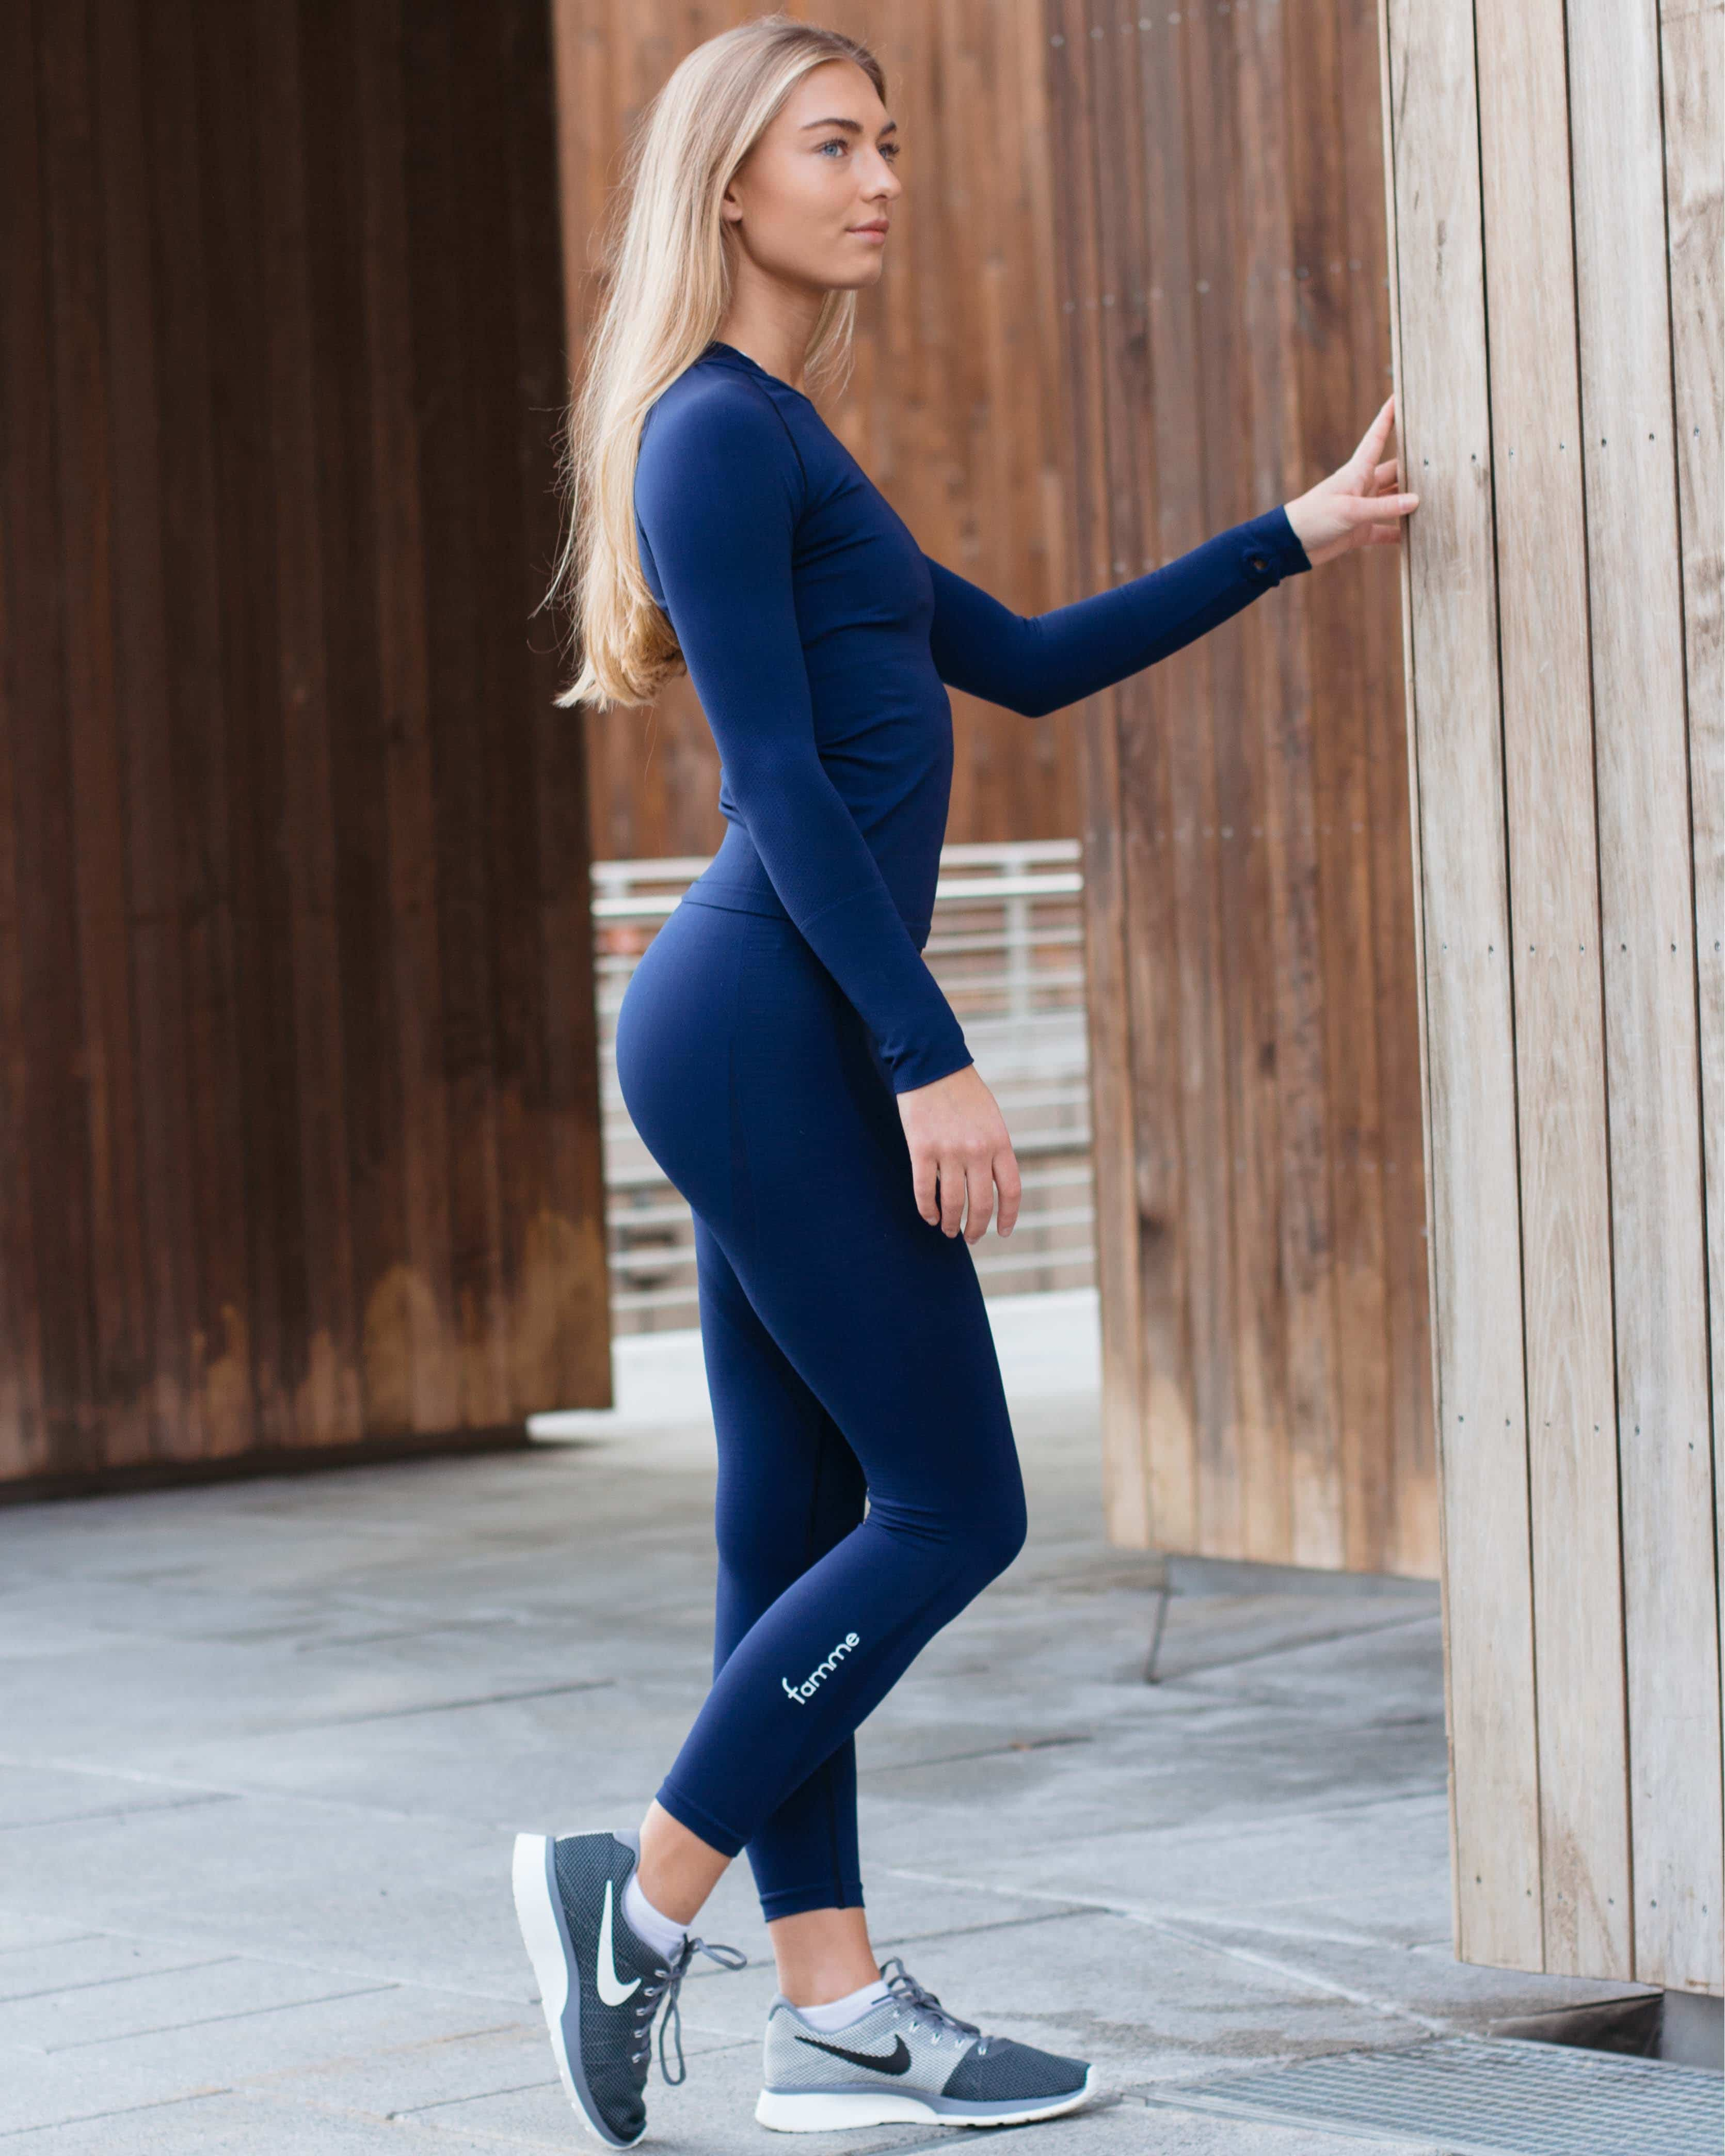 FAMME Vortex Leggings - Navy Blue